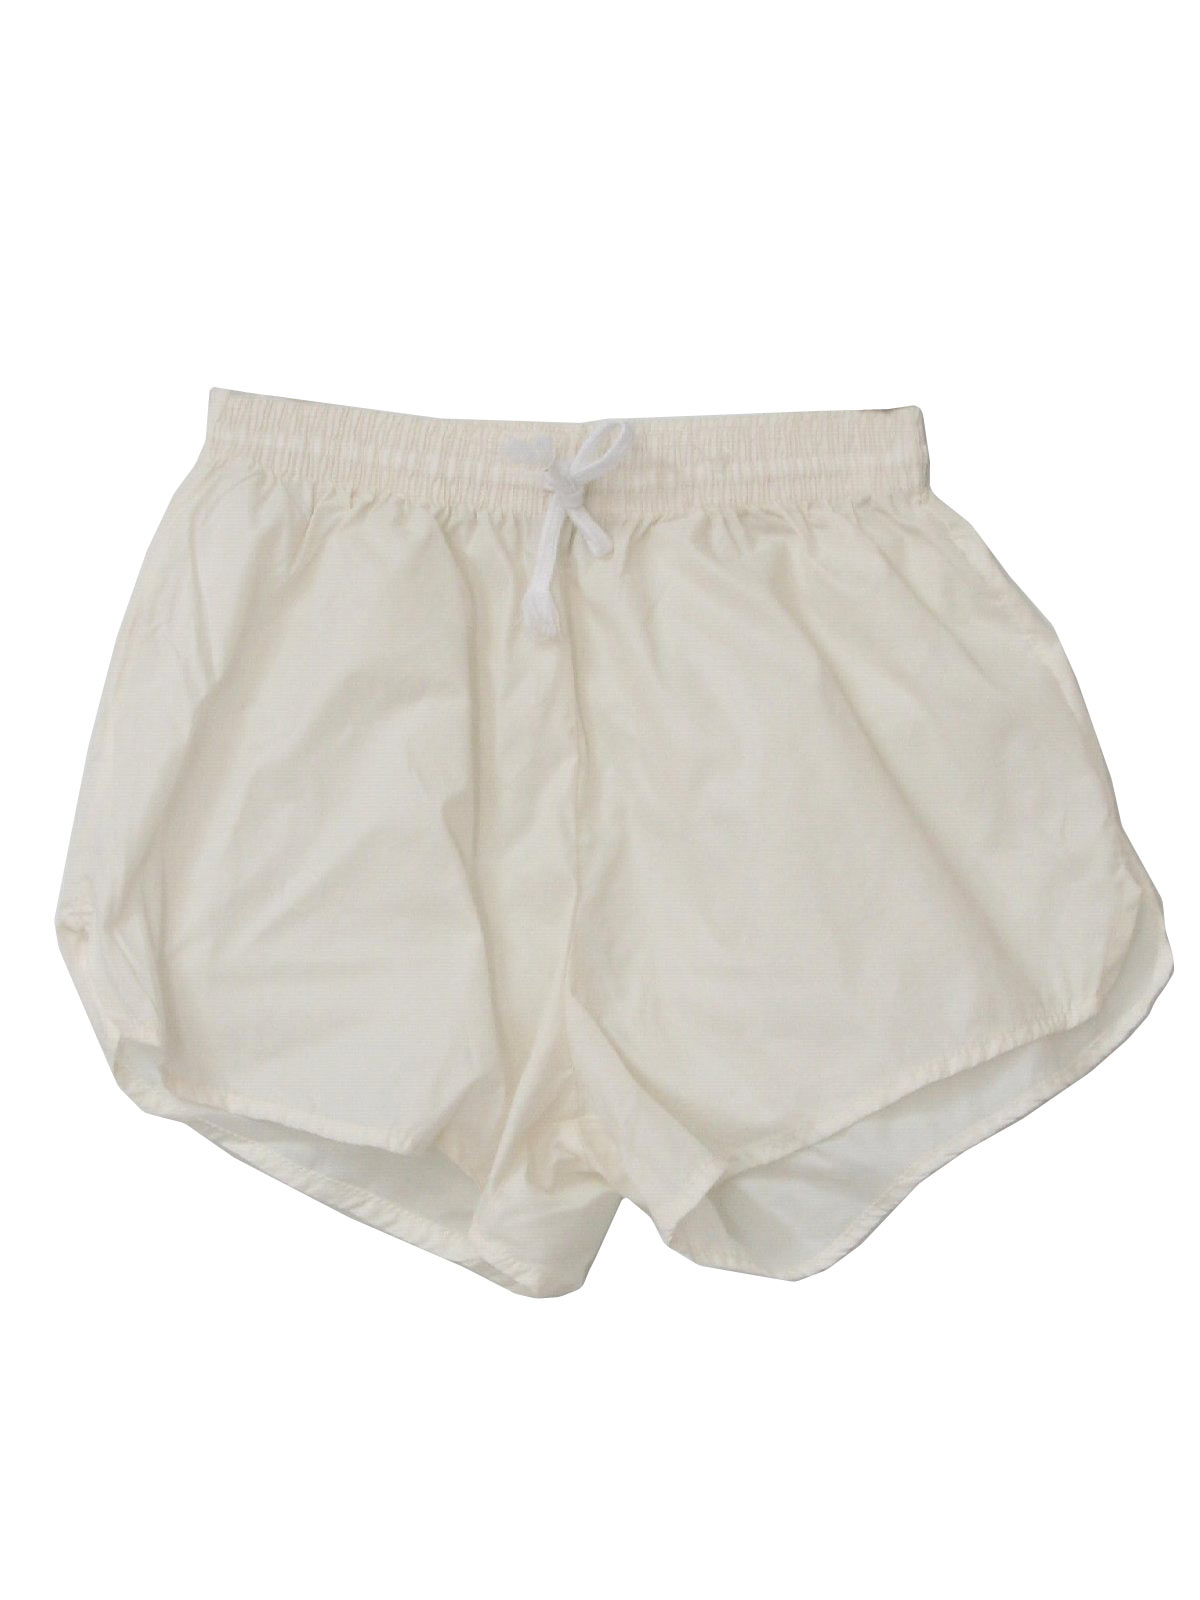 Shop best men's gym shorts from DICK'S Sporting Goods today. If you find a lower price on best men's gym shorts somewhere else, we'll match it with our Best Price Guarantee! Check out customer reviews on best men's gym shorts and save big on a variety of products. Plus, ScoreCard members earn points on every purchase.